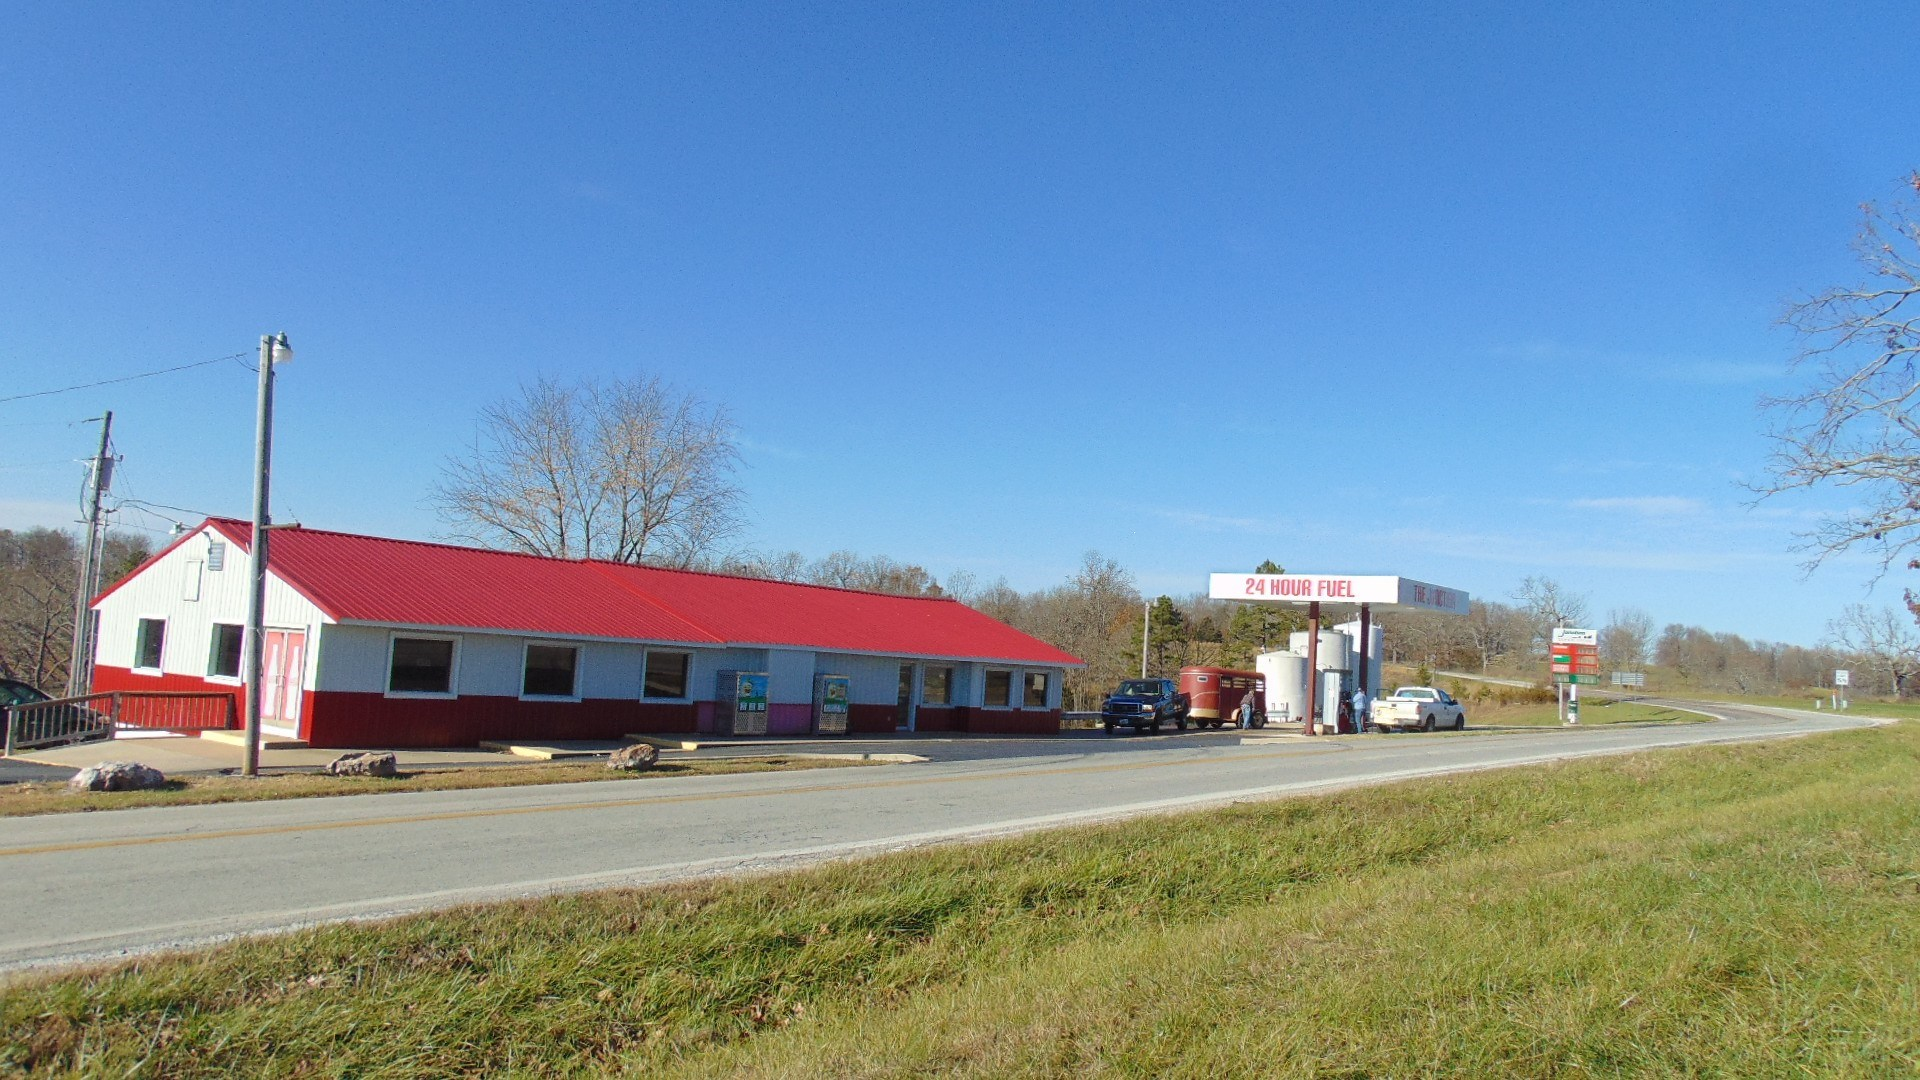 Commercial Building and Business for Sale Southern MO Ozarks